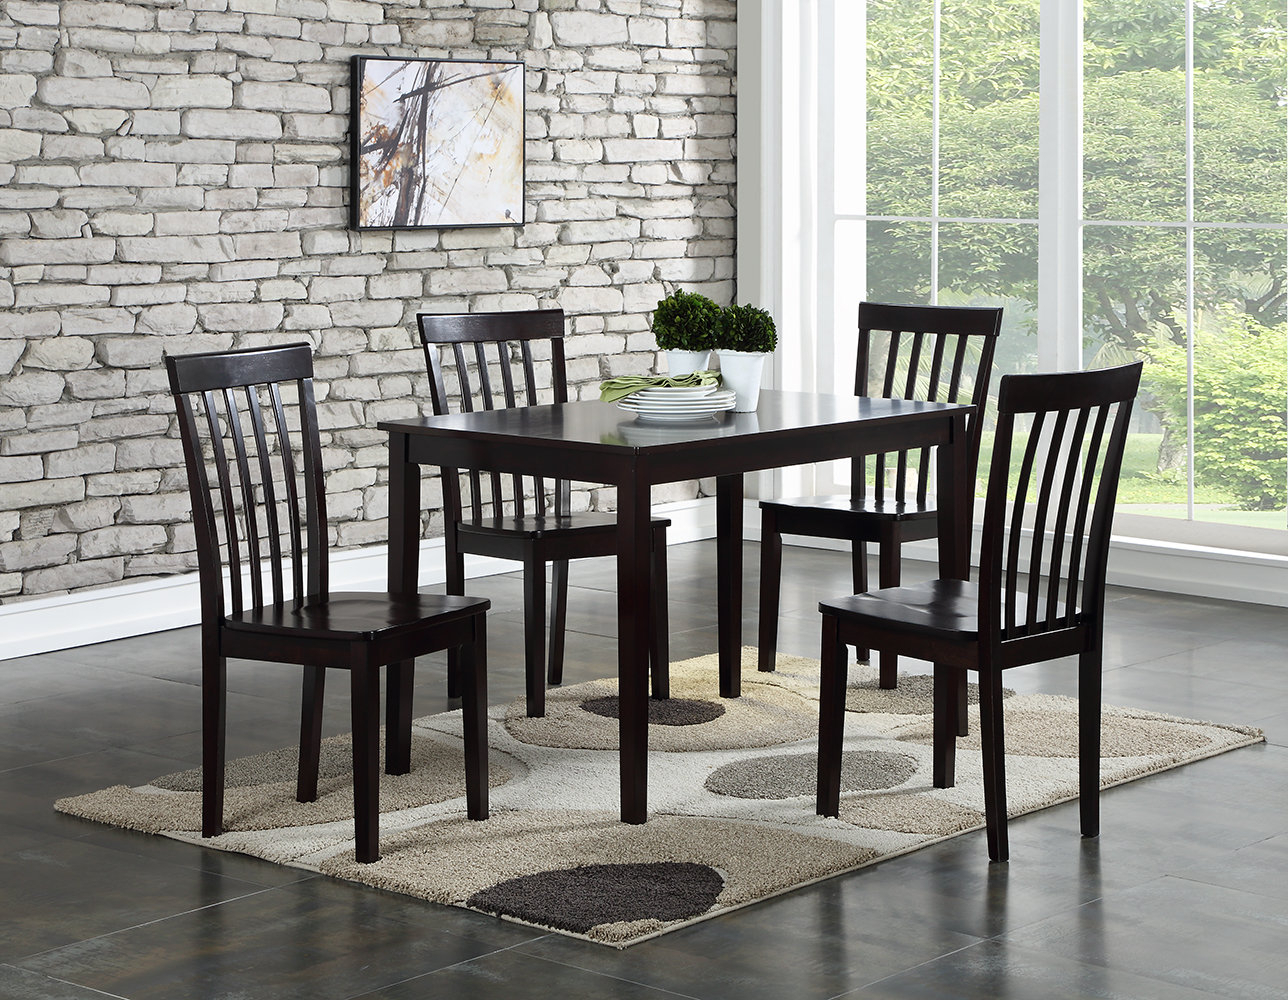 Widely Used Ralls 5 Piece Dining Set & Reviews (View 22 of 25)